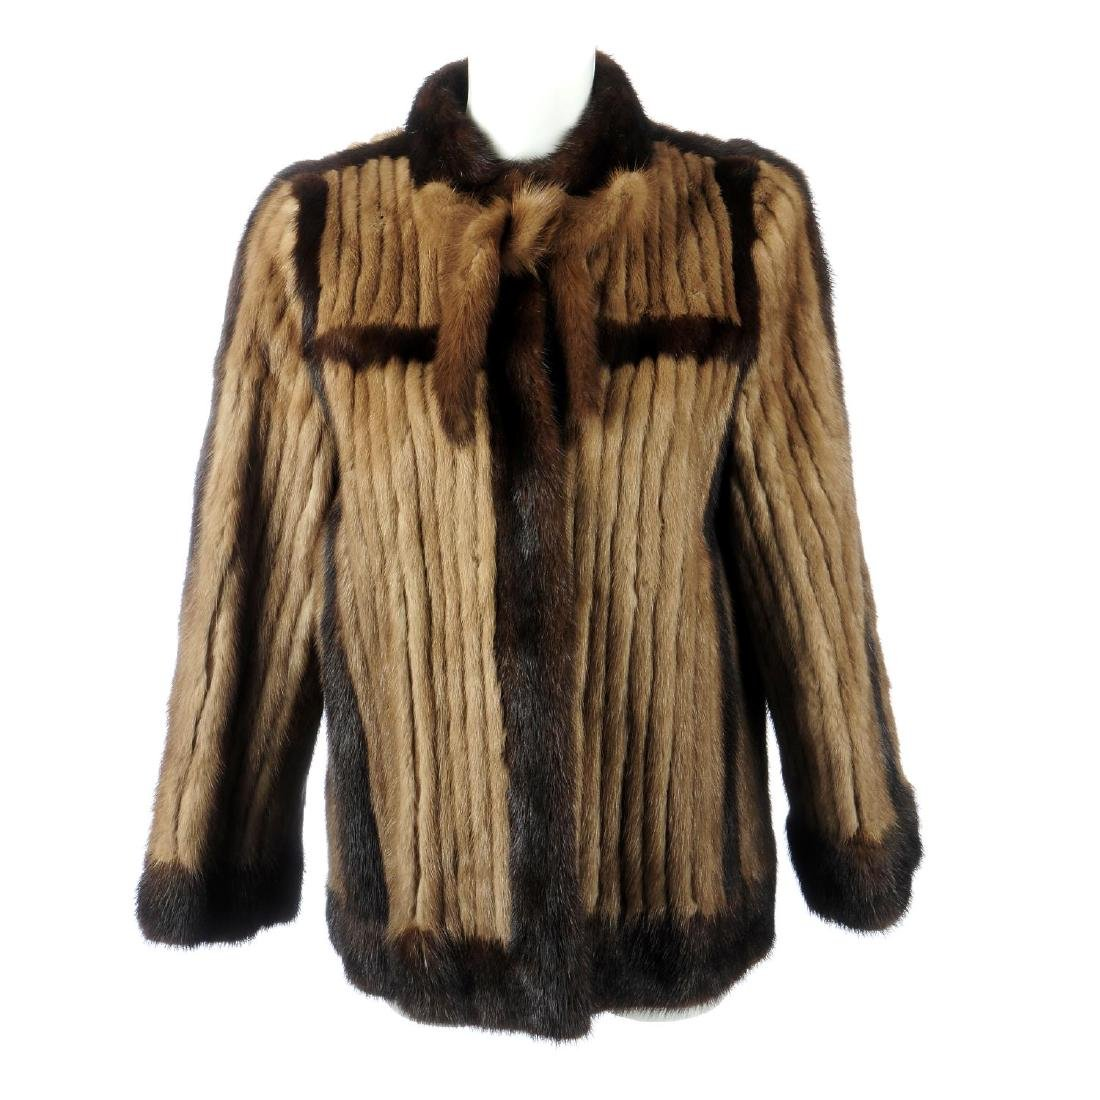 A mink pieced jacket. Crafted from pastel mink tails